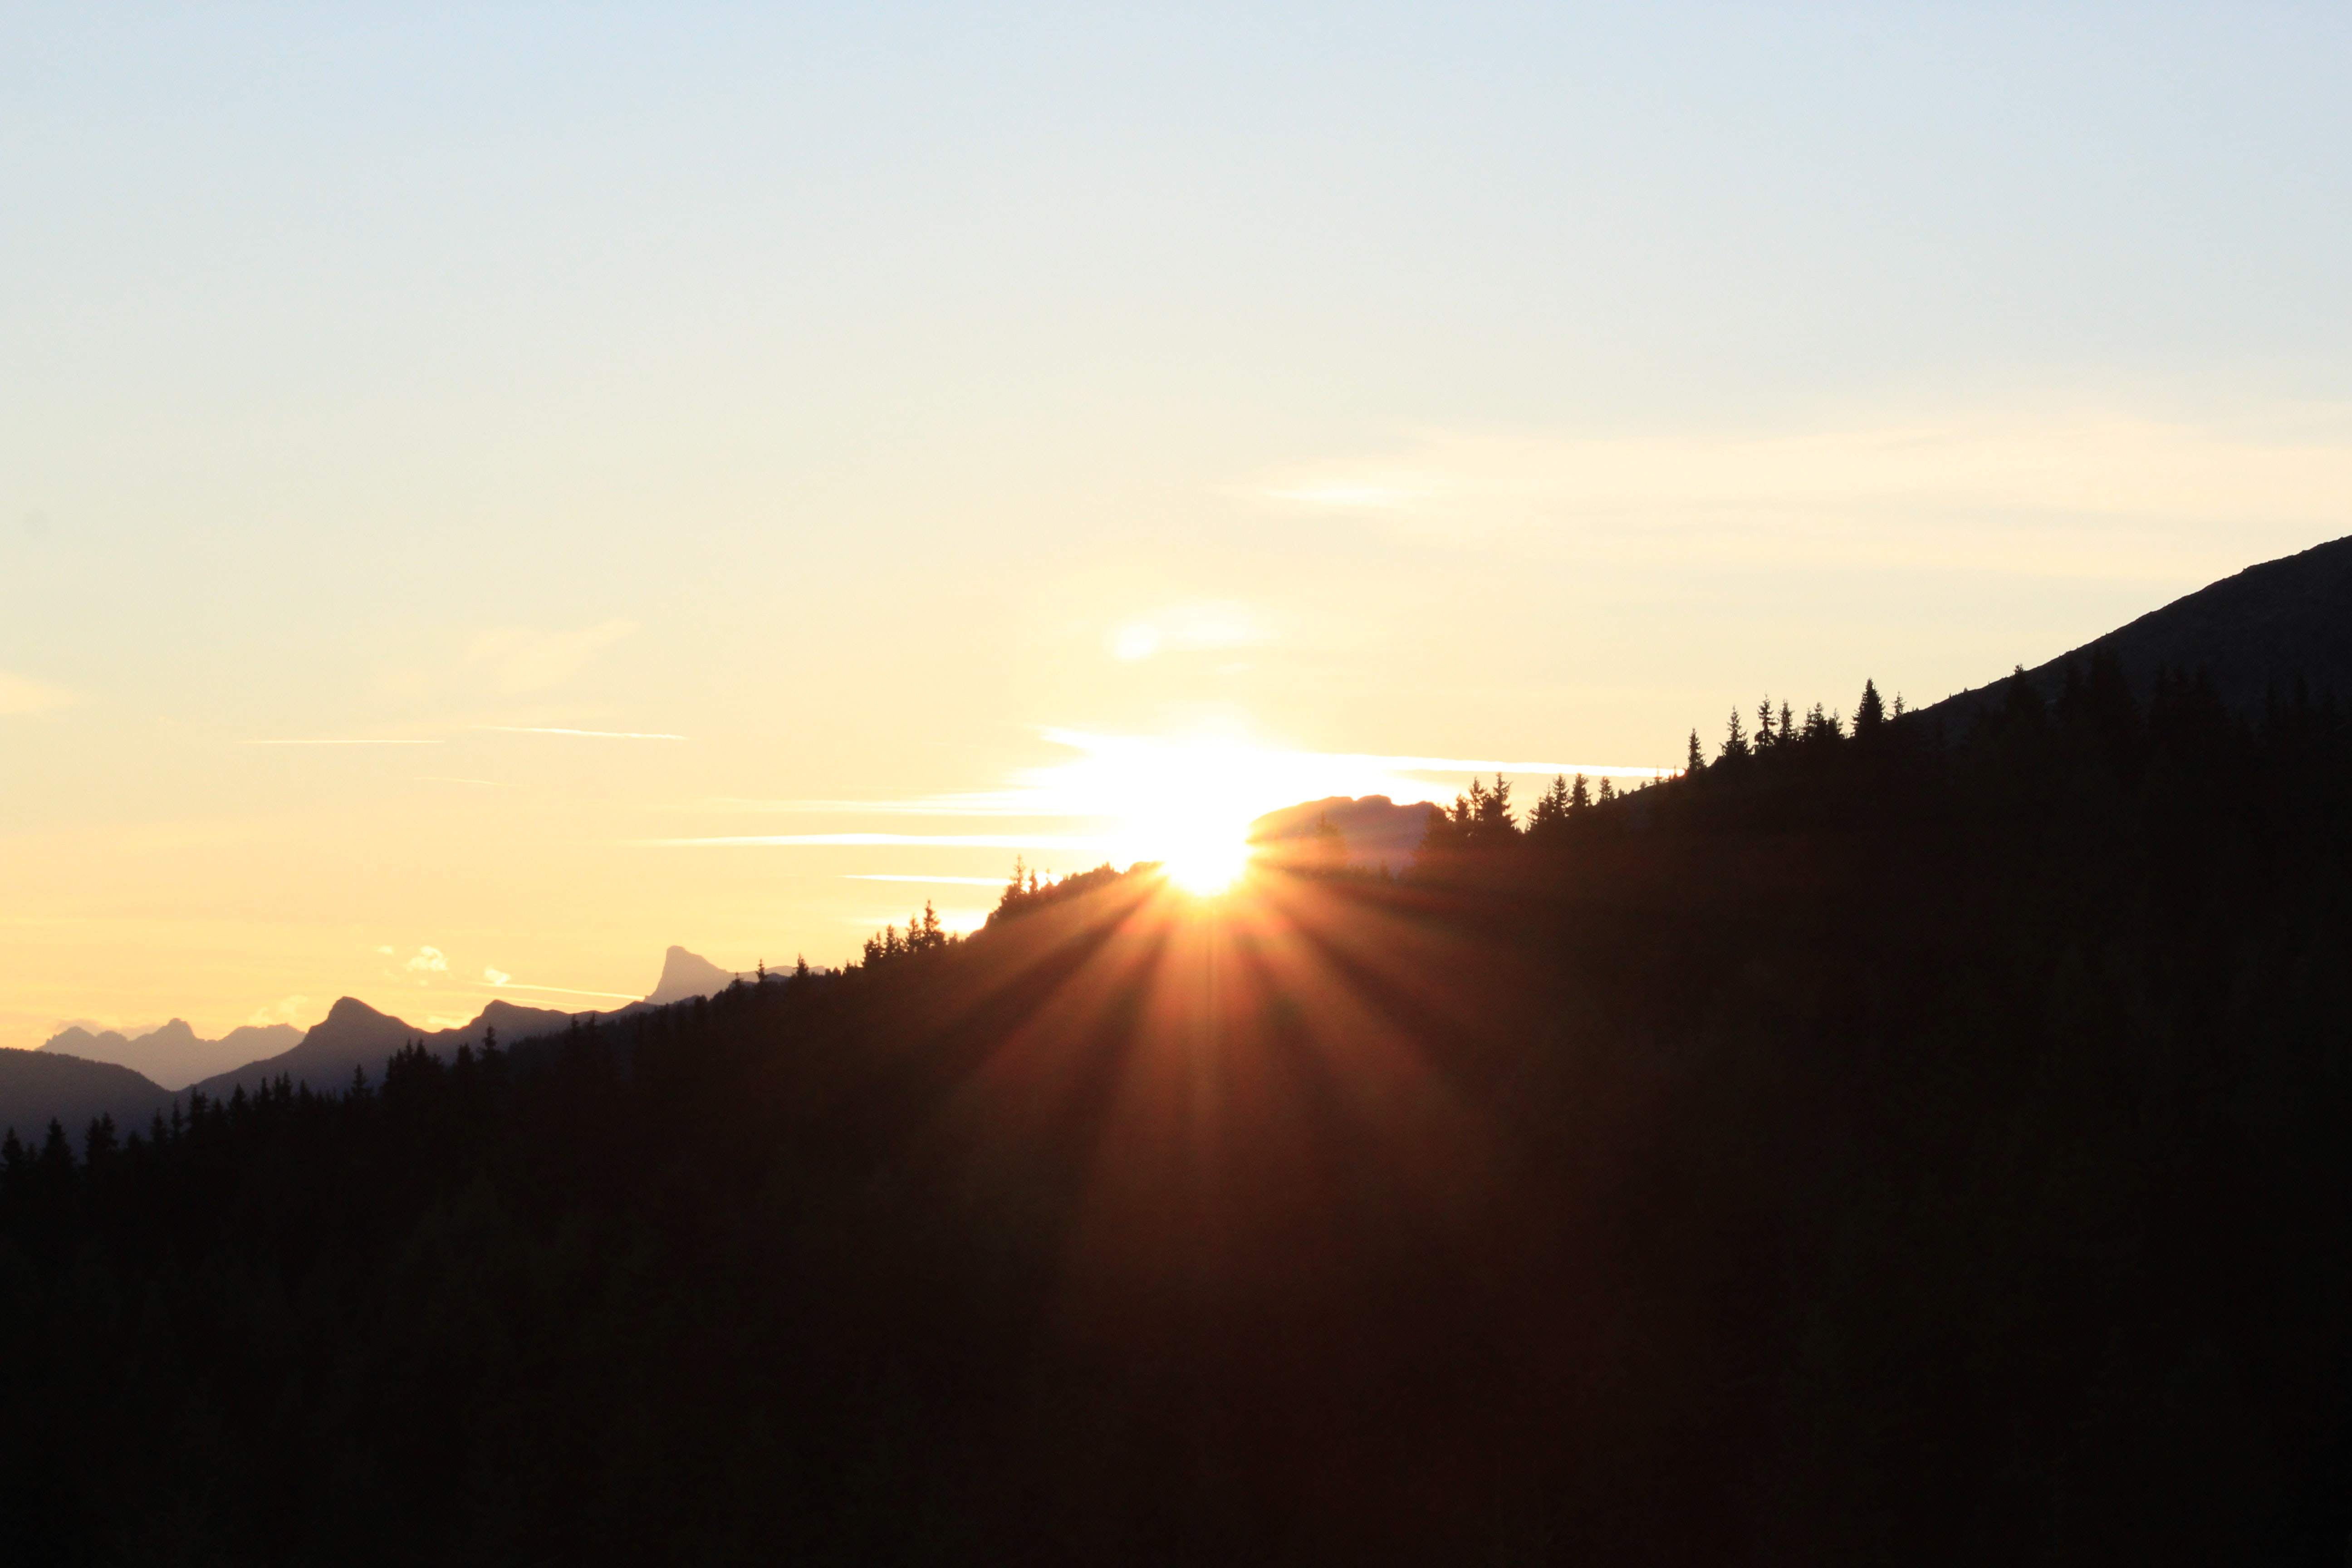 silhouette of mountain during golden hour